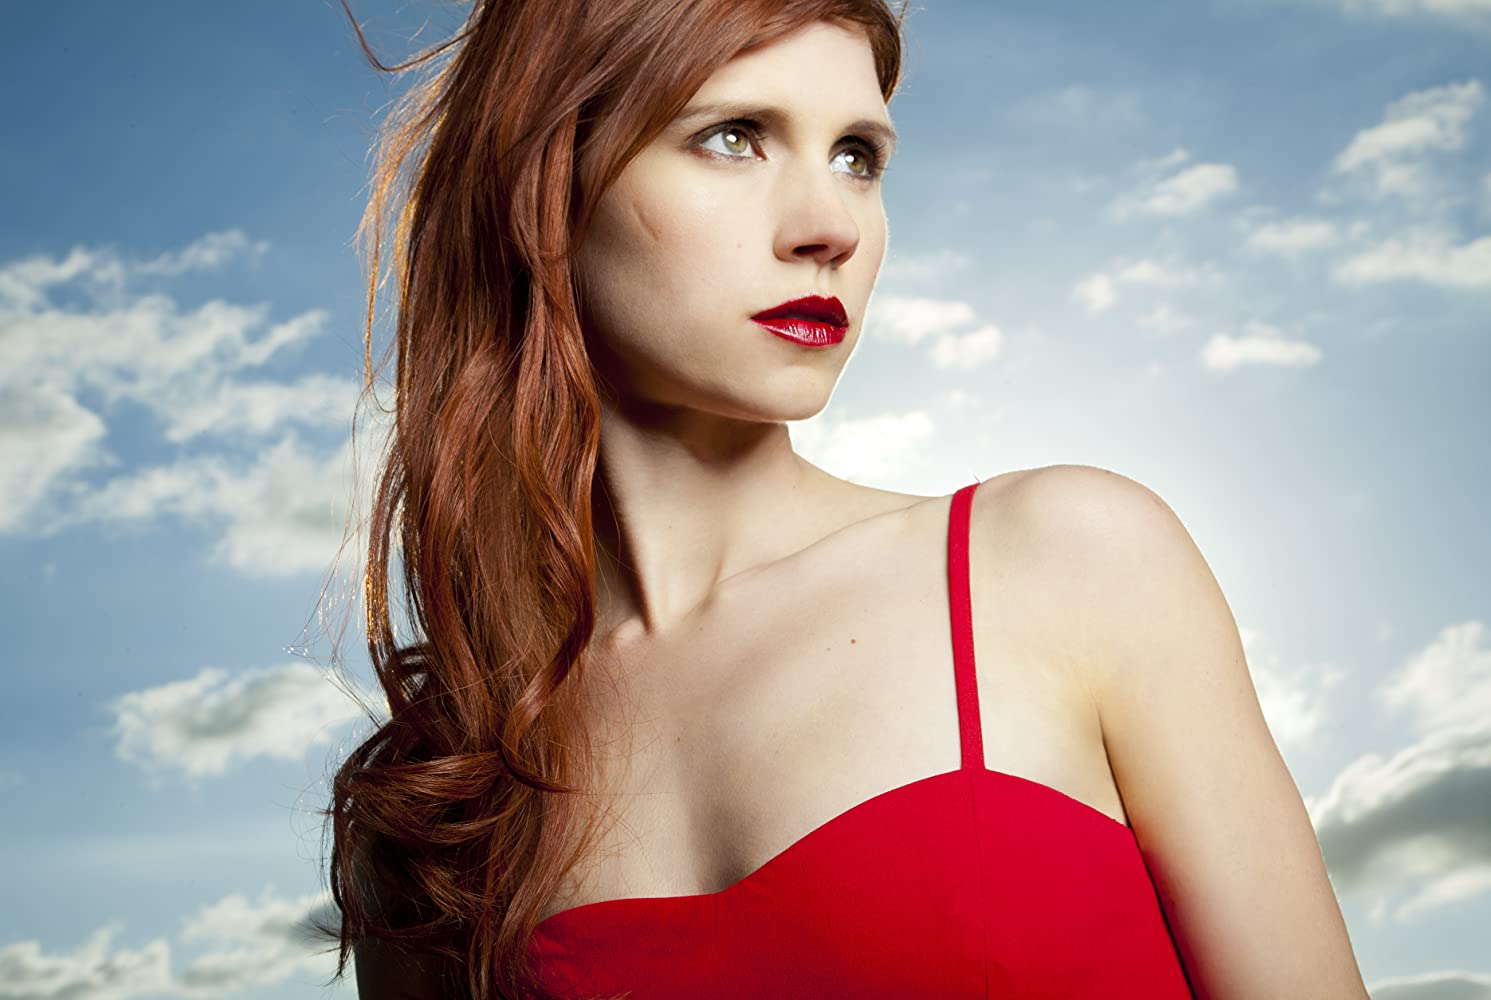 Julie McNiven naked (86 photos), Topless, Cleavage, Feet, bra 2015